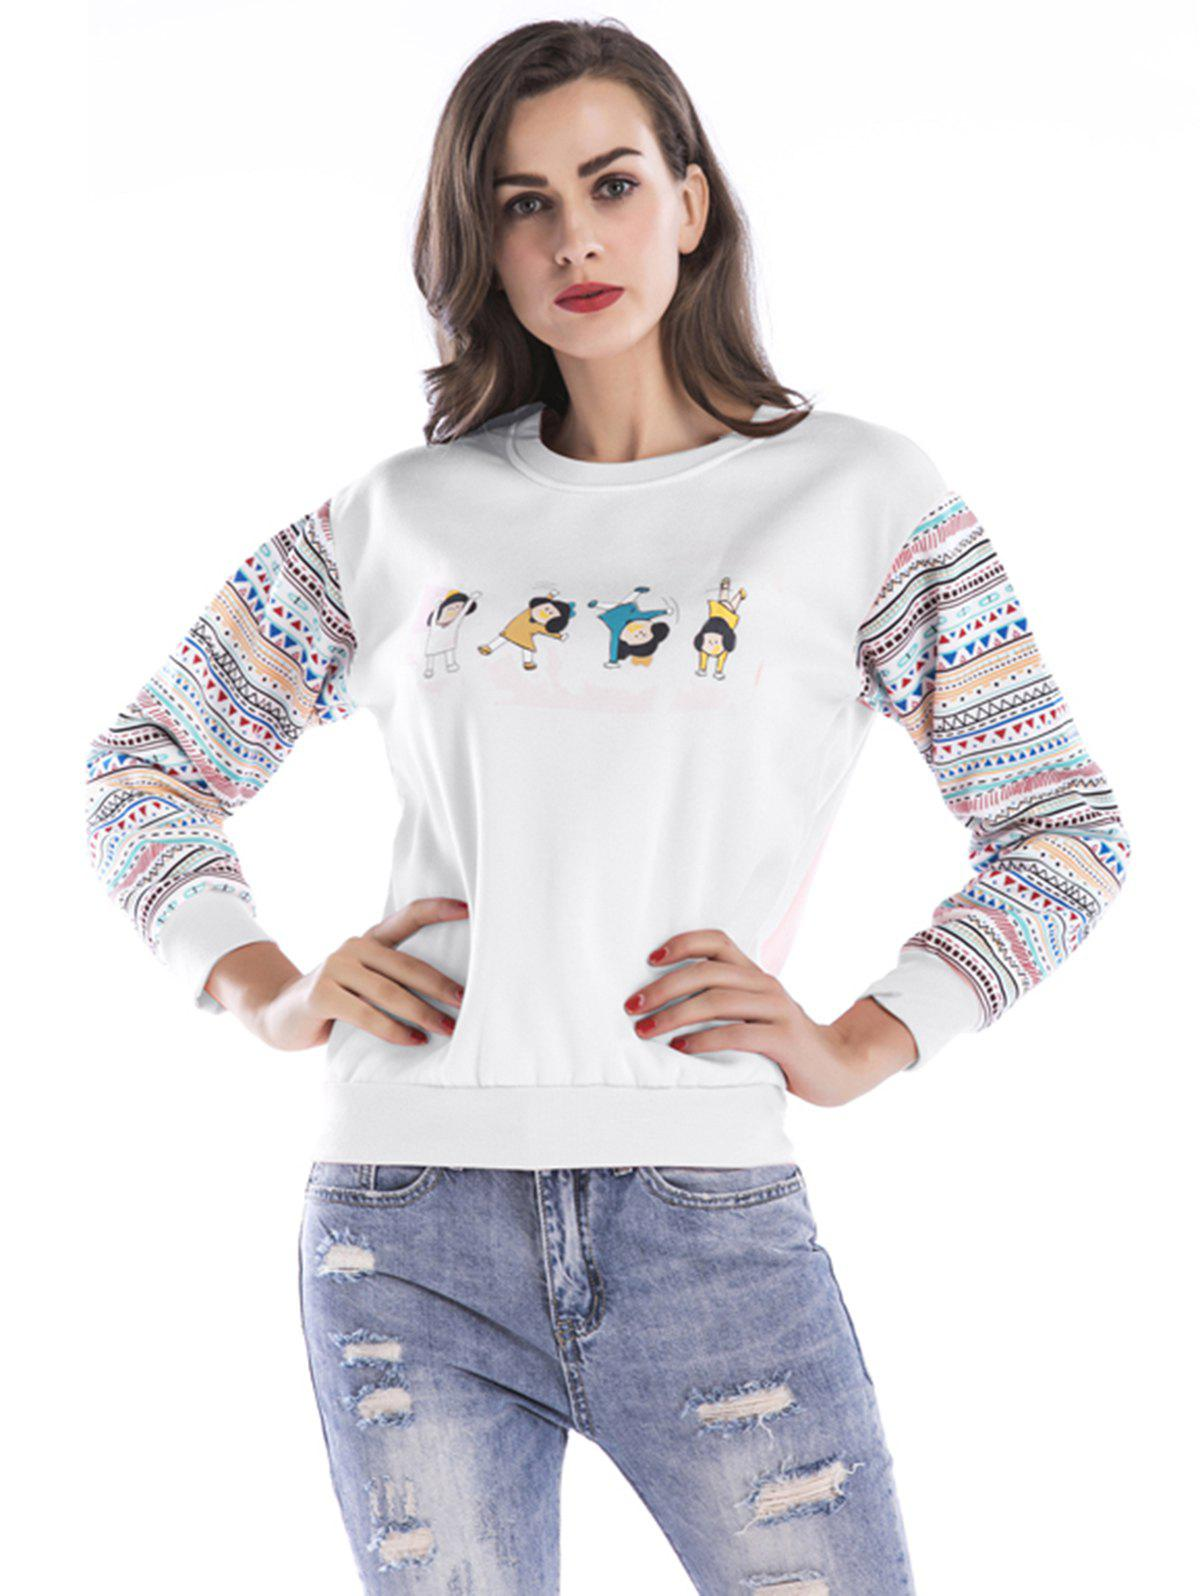 Chic Women Fashion Floral Splice Long Sleeve Blouse Top Pullover Casual Christmas T Shirt